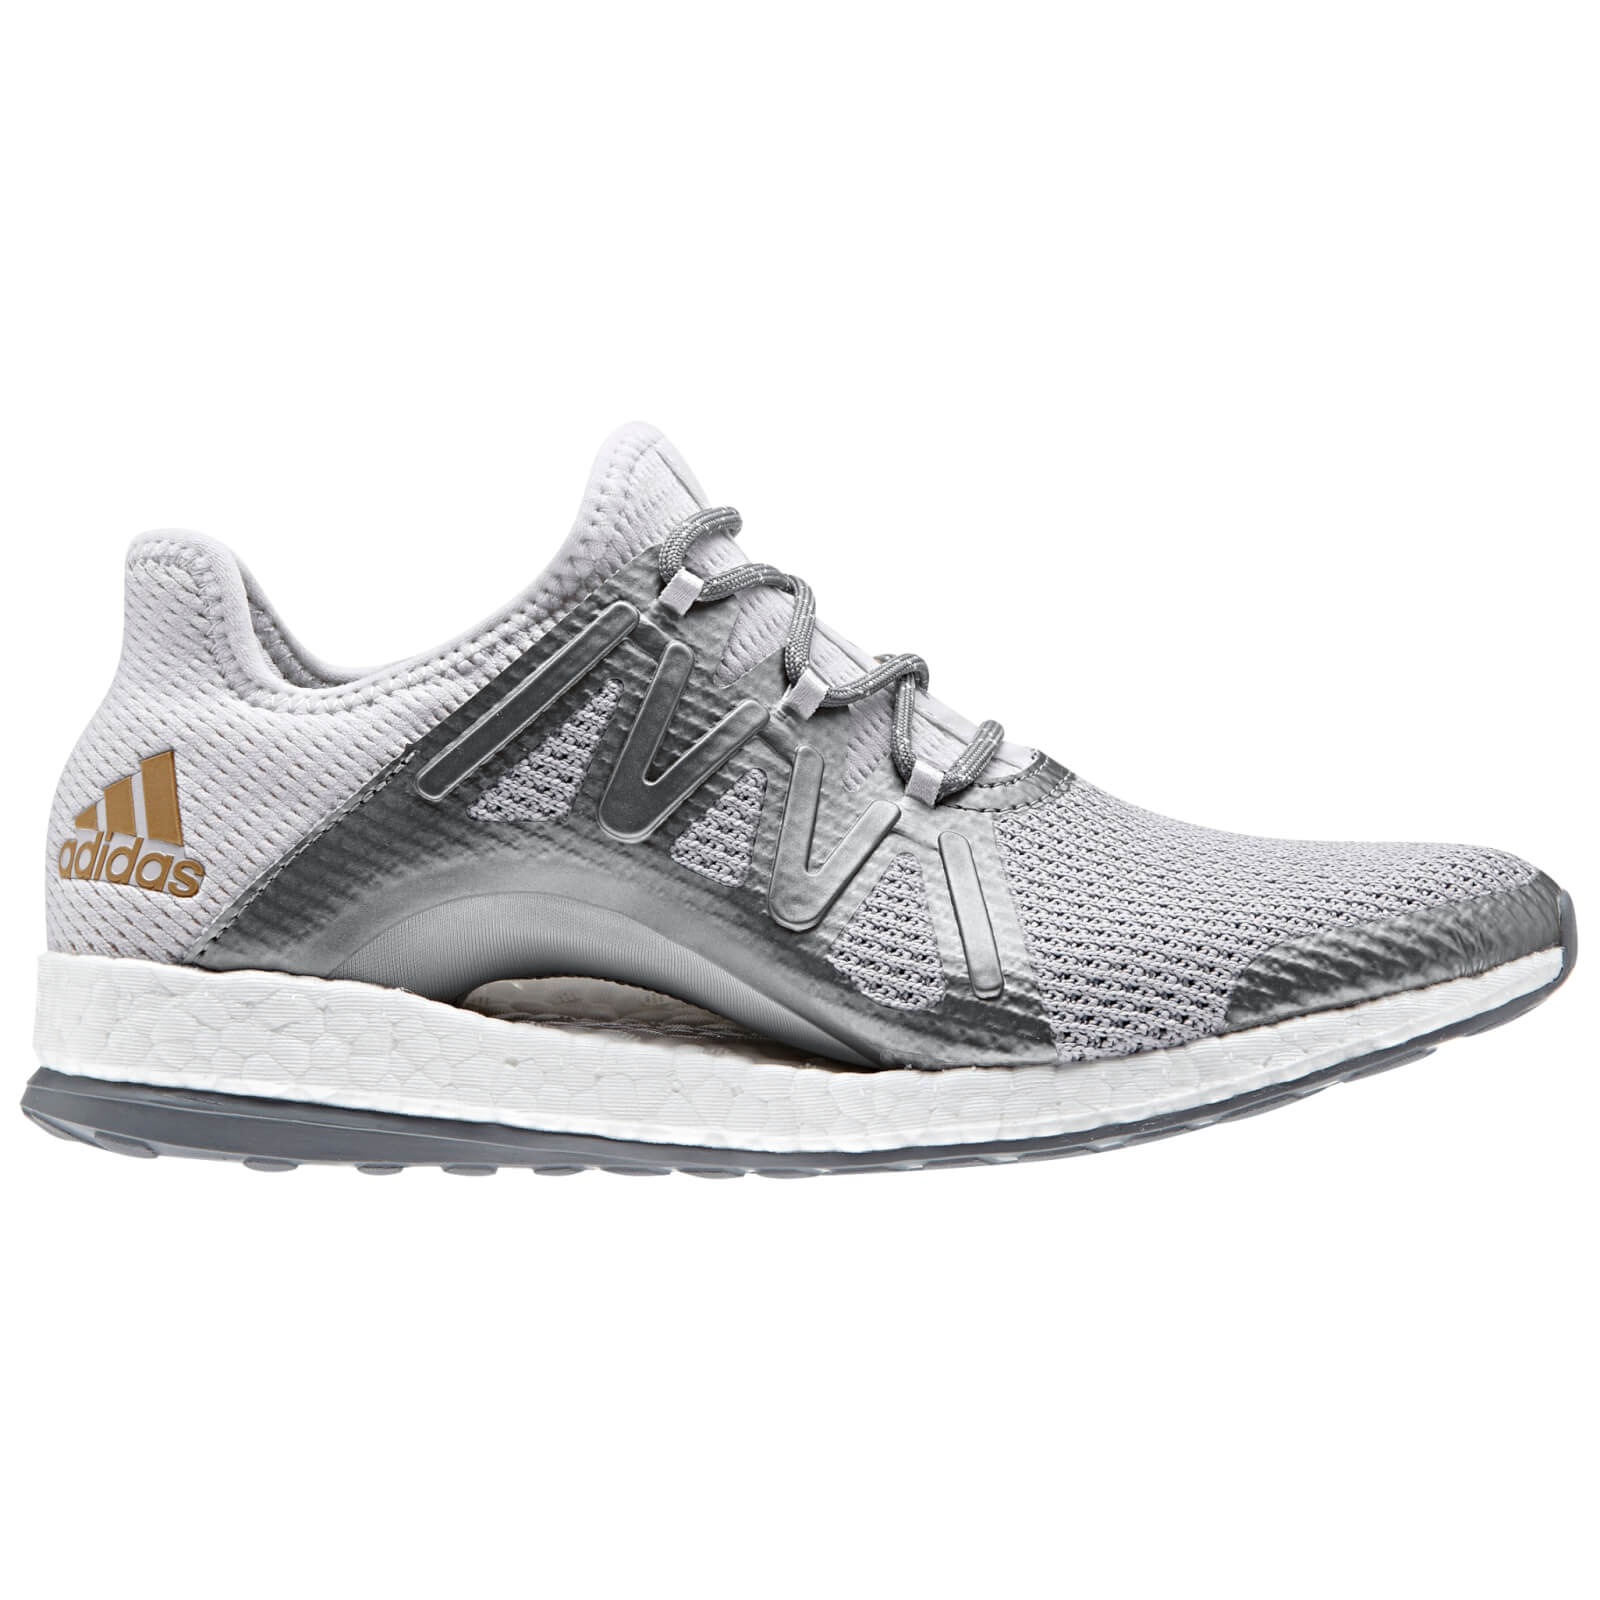 9acaaa54561ac adidas Women s Pure Boost Xpose Running Shoes - Grey